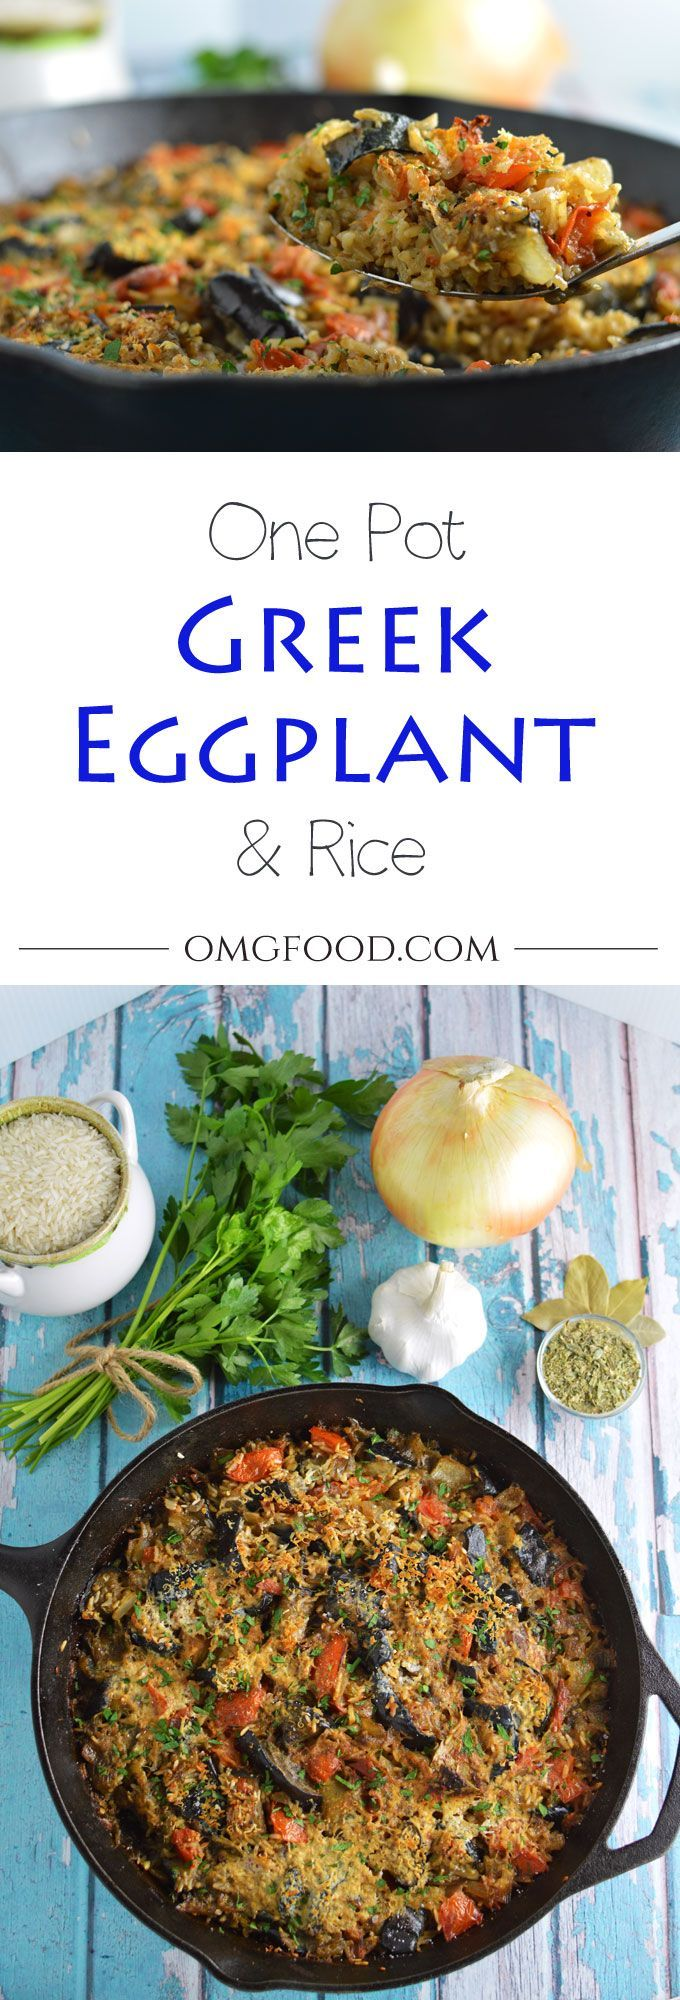 5389 best greek food recipes images on pinterest cook healthy one pot greek eggplant and rice an easy to make baked casserole topped with mizithra forumfinder Gallery